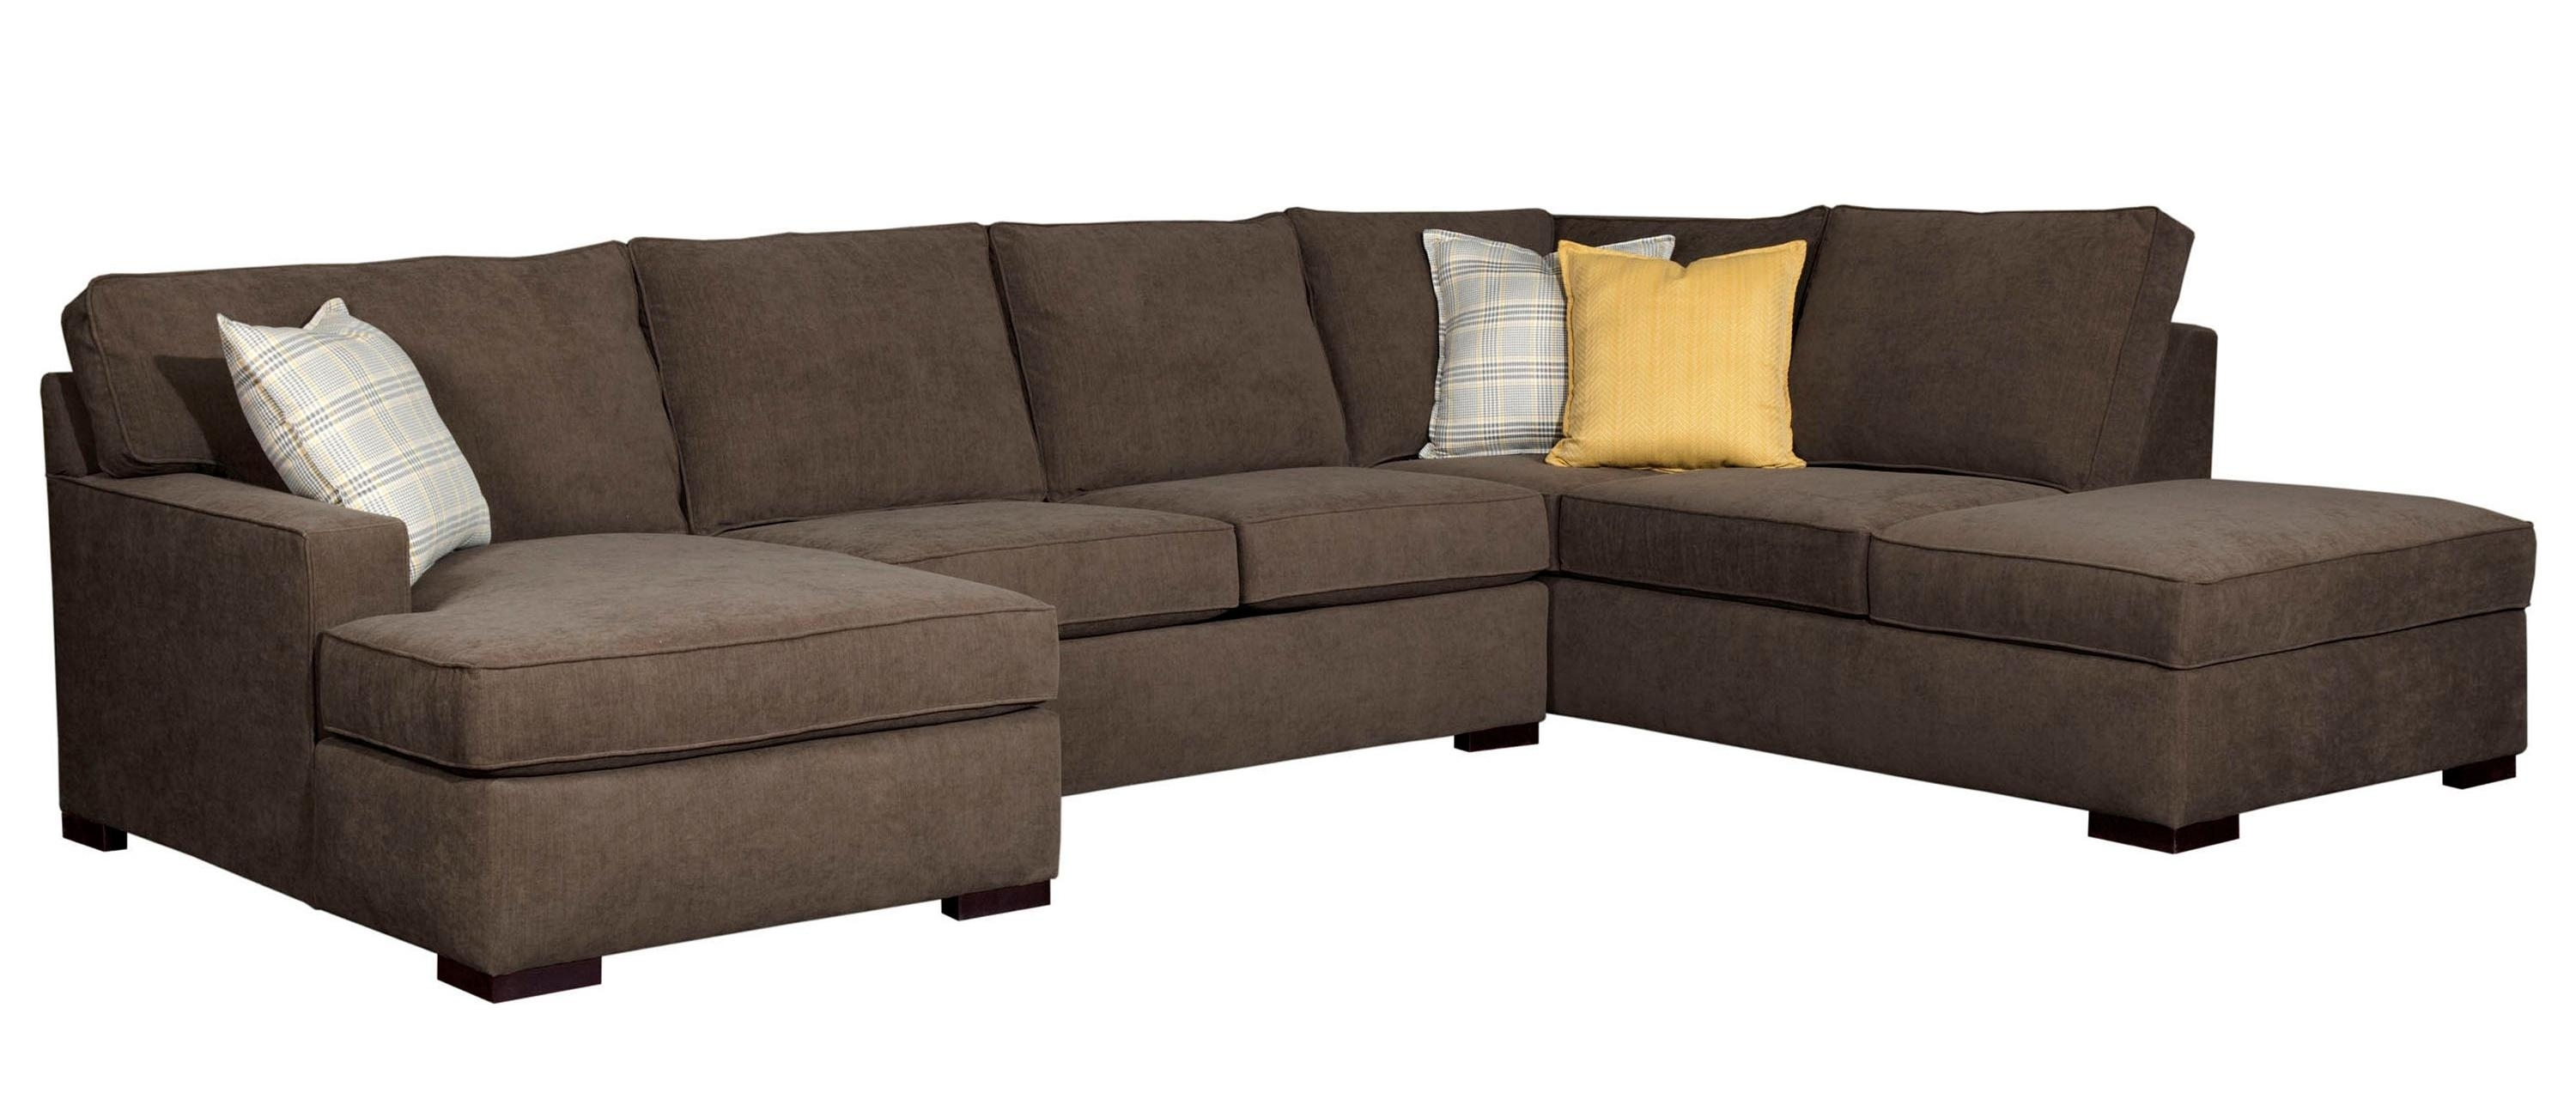 Broyhill Furniture Raphael Contemporary Sectional Sofa With Laf With Regard To Norfolk Grey 6 Piece Sectionals With Raf Chaise (Image 3 of 25)